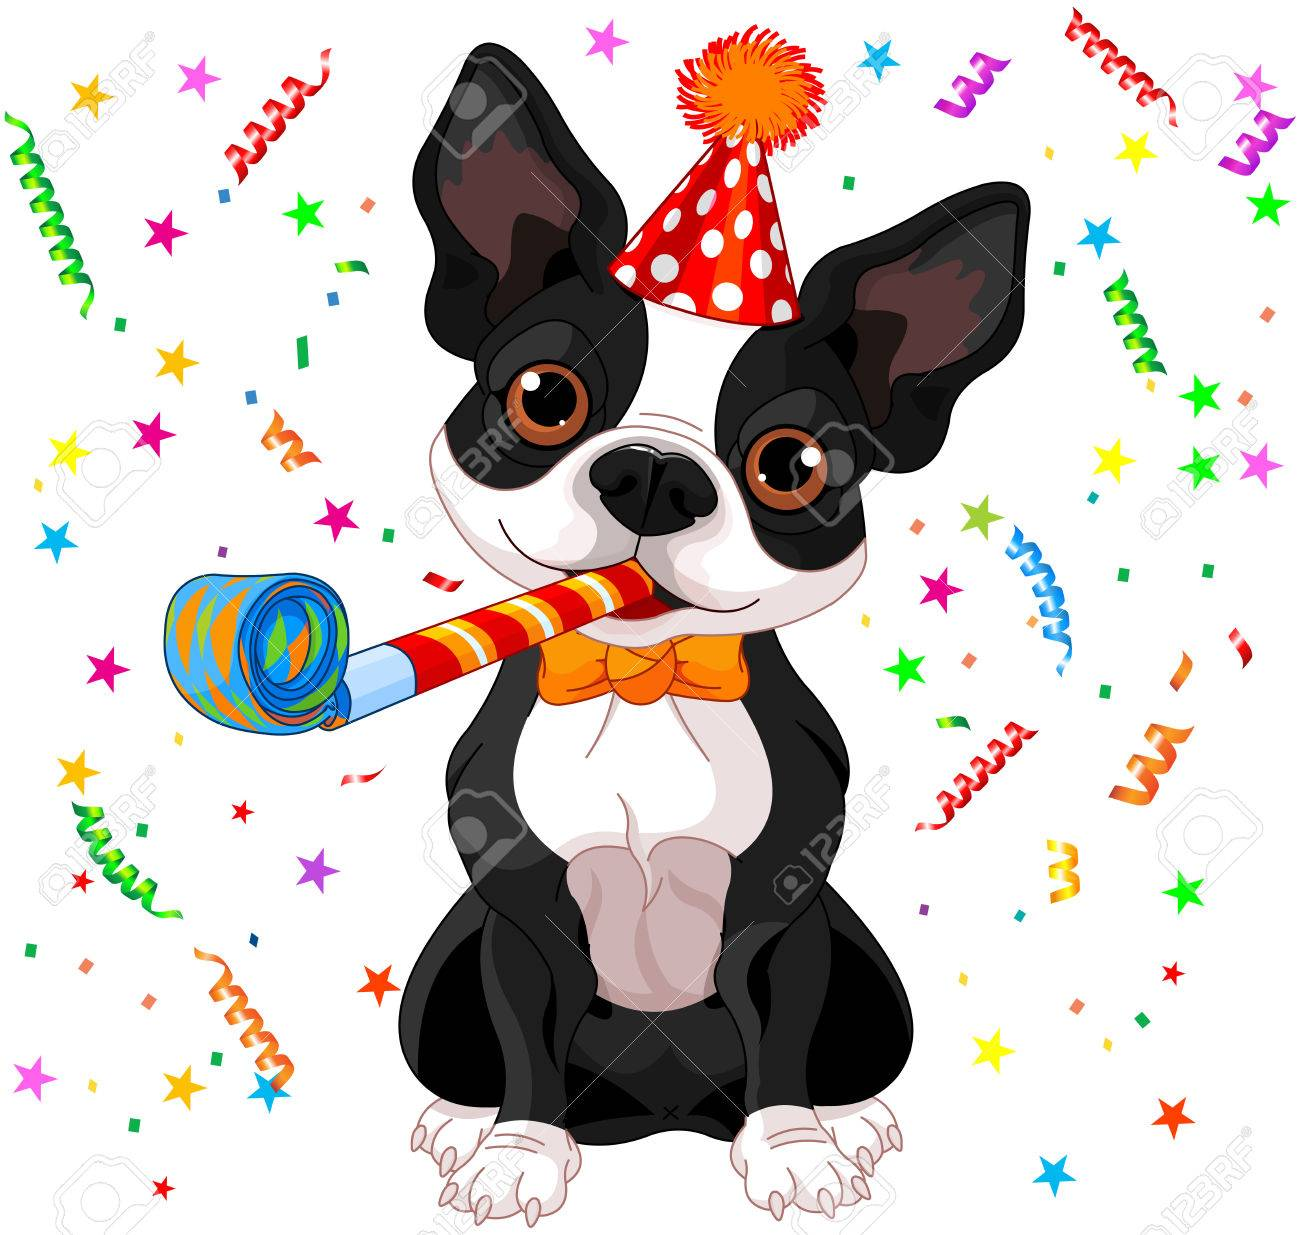 Maladie d'Addison ou insuffisance surrénalienne ou hypoadrénocorticisme - Page 4 35588778-illustration-of-cute-boston-terrier-celebrating